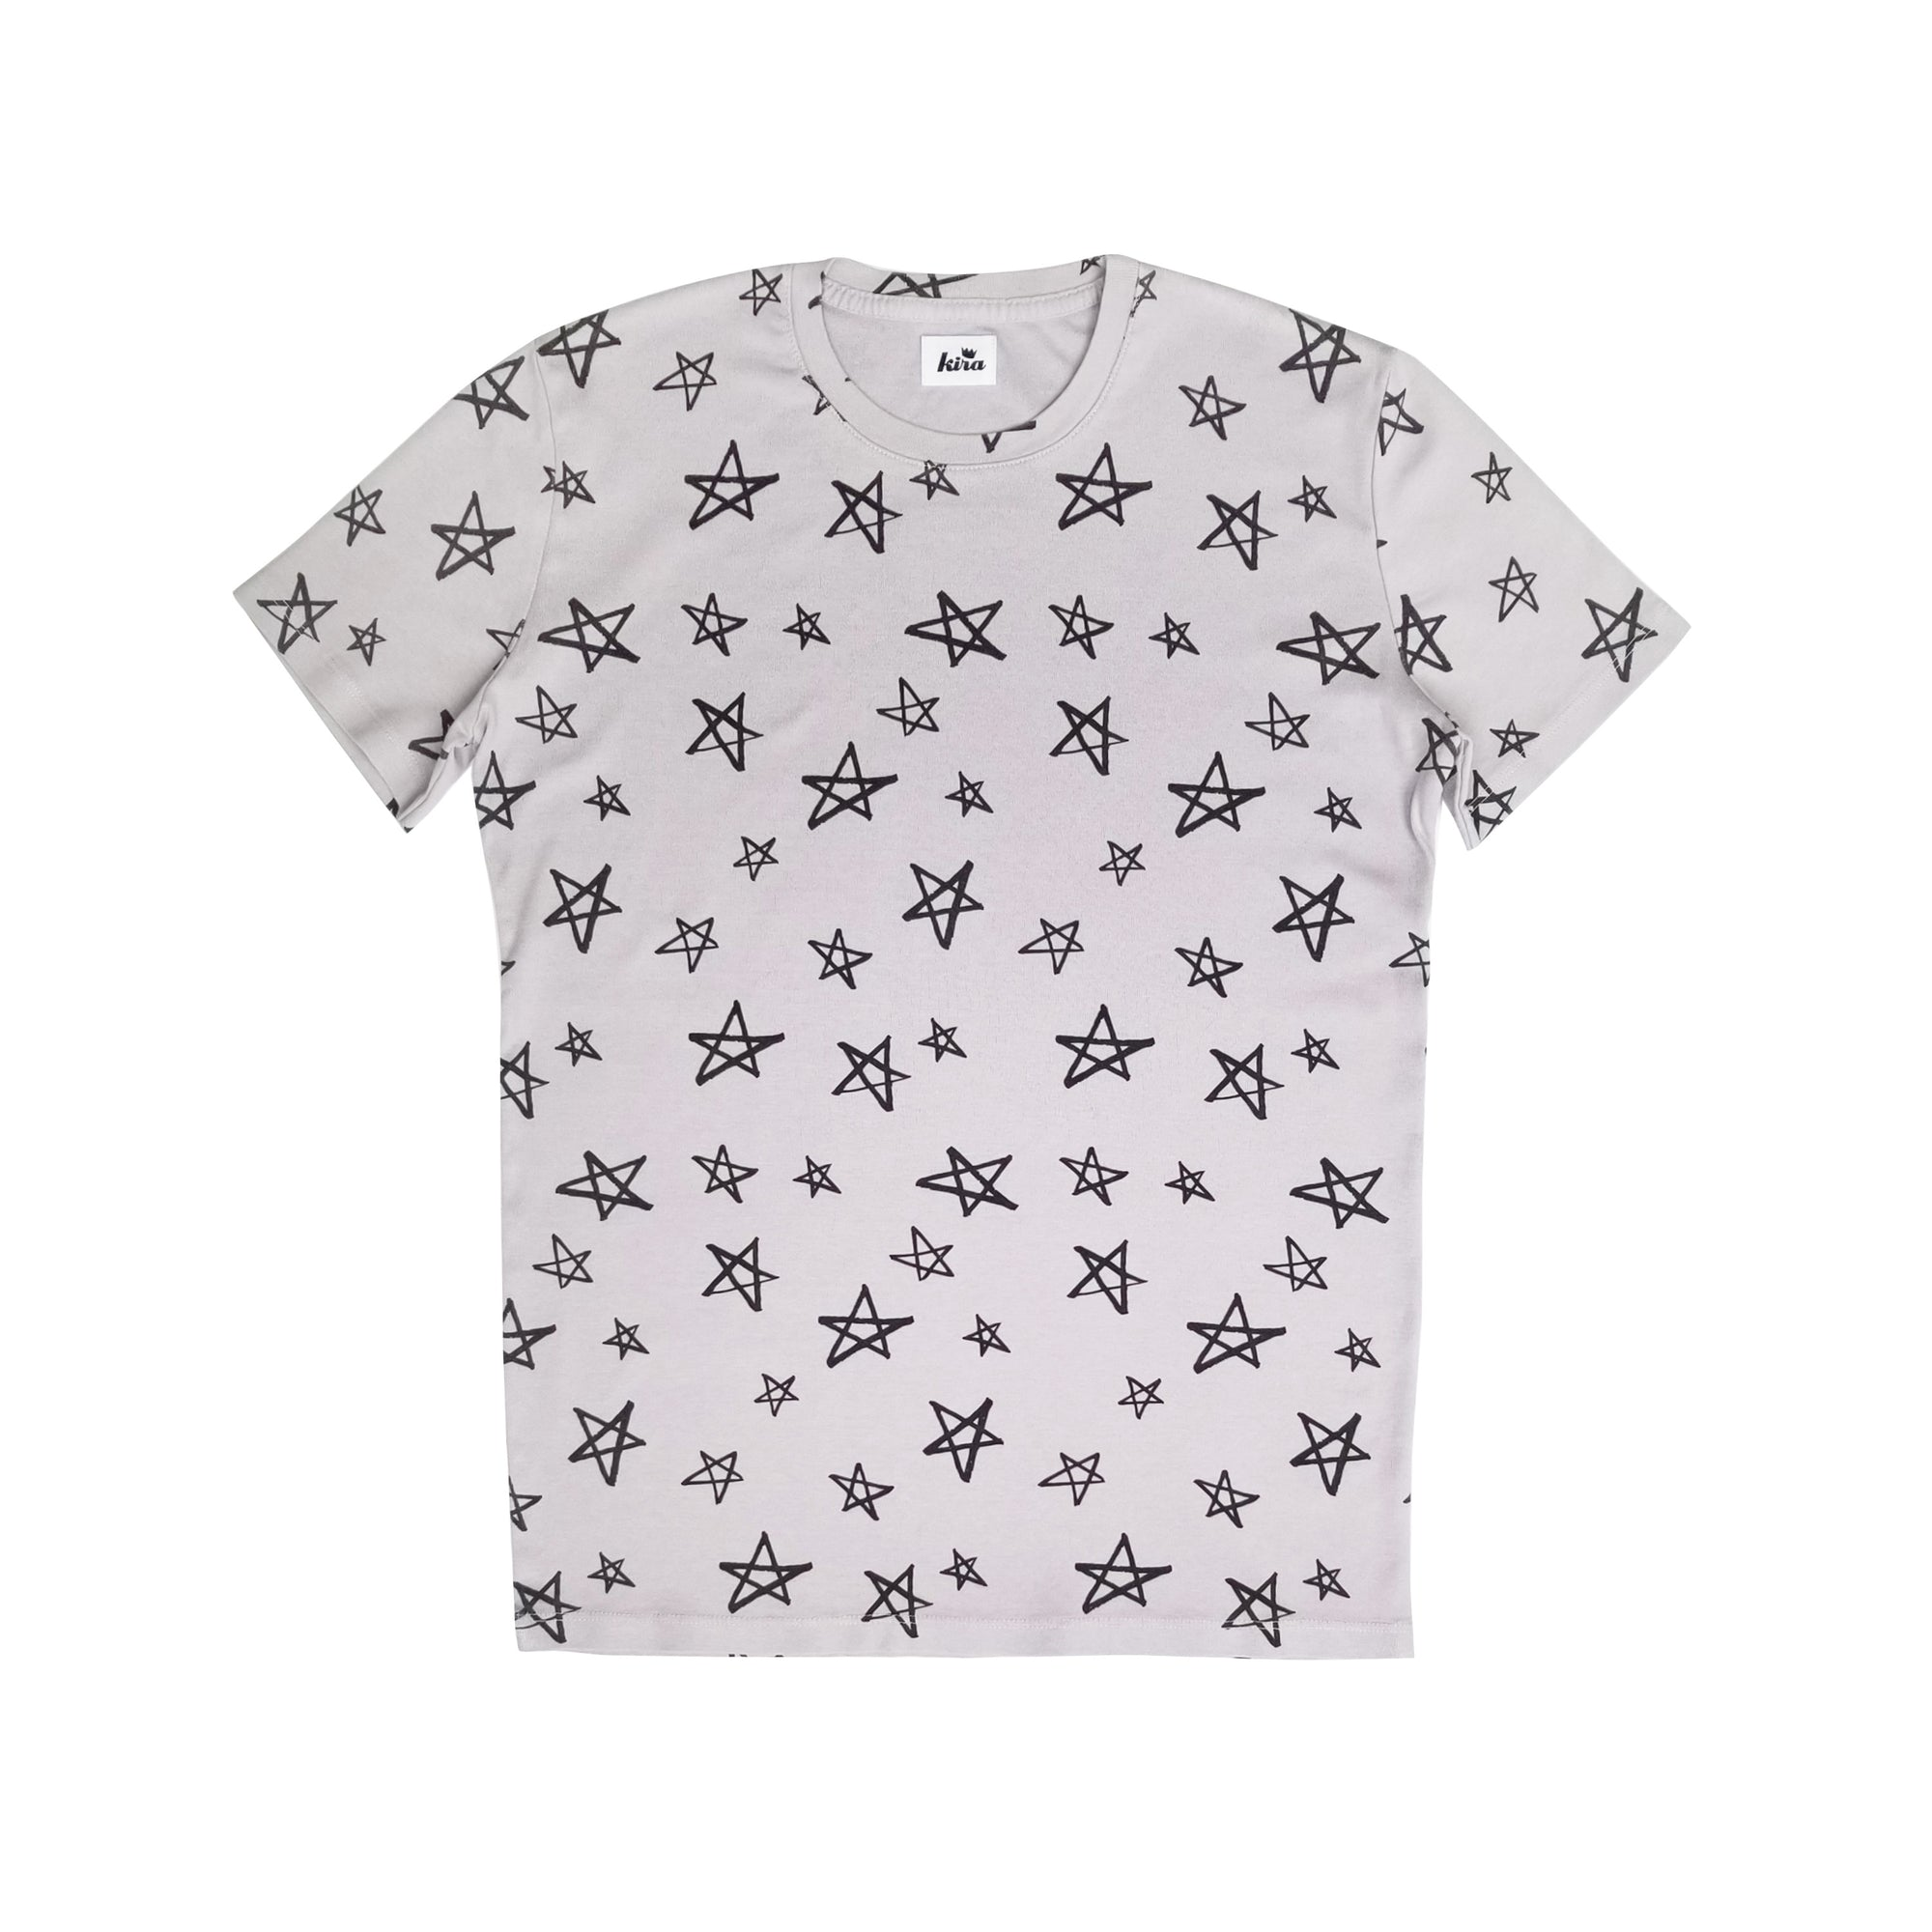 Stars Print T-shirt, Light Grey | Unisex Adult